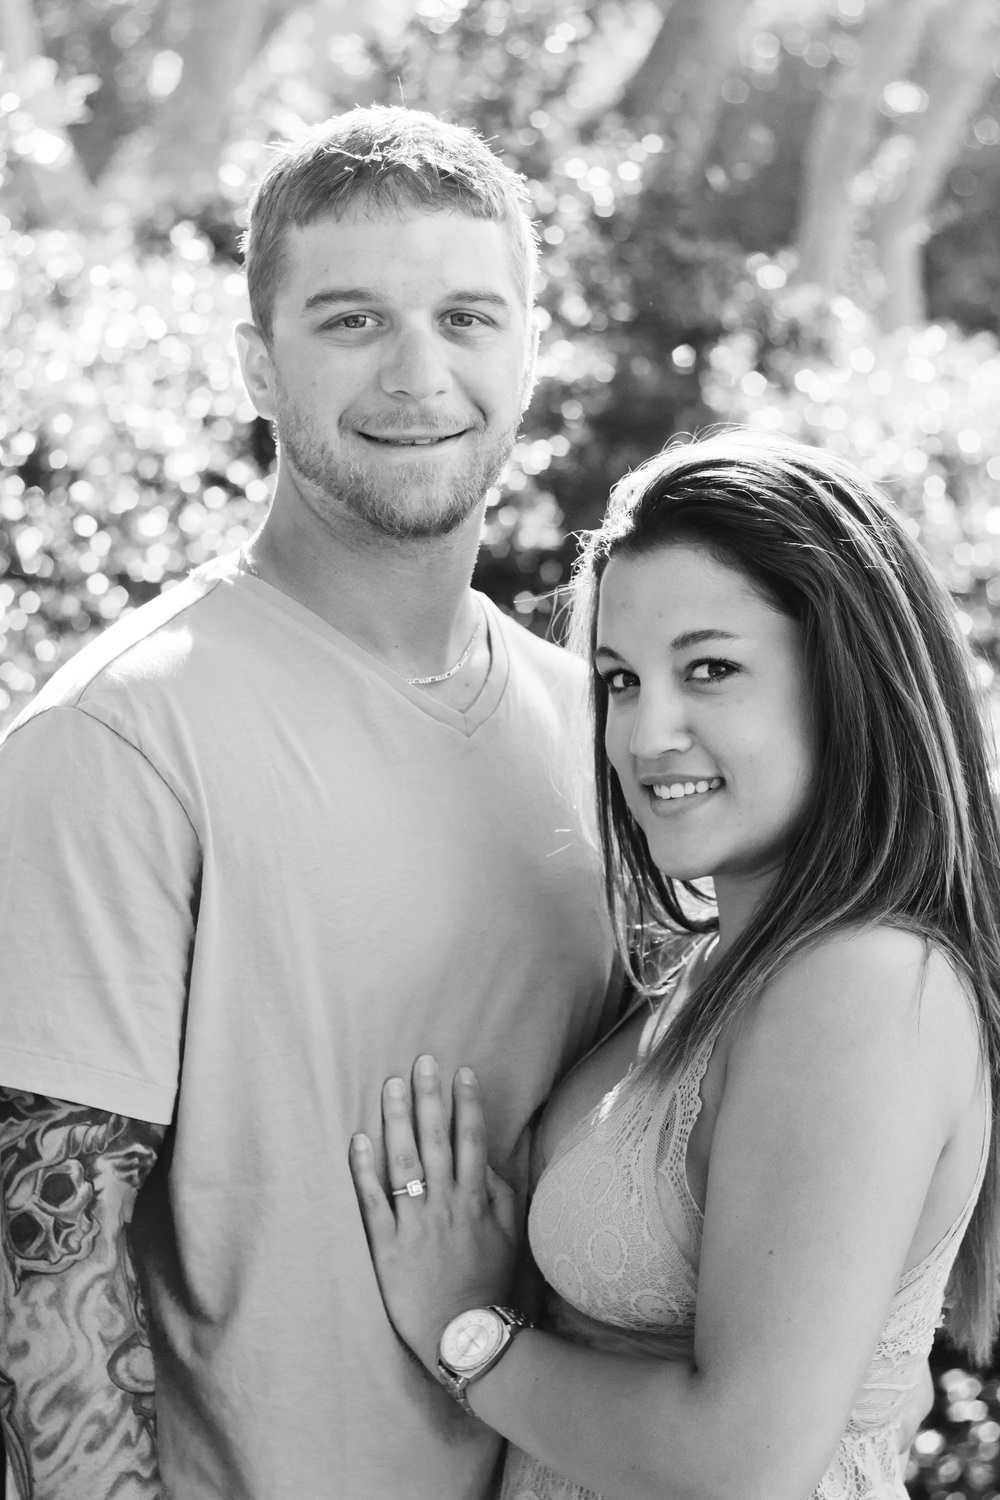 TIFFANY_ABRUZZO_PHOTOGRAPHY_ENGAGEMENT_13bw.jpg